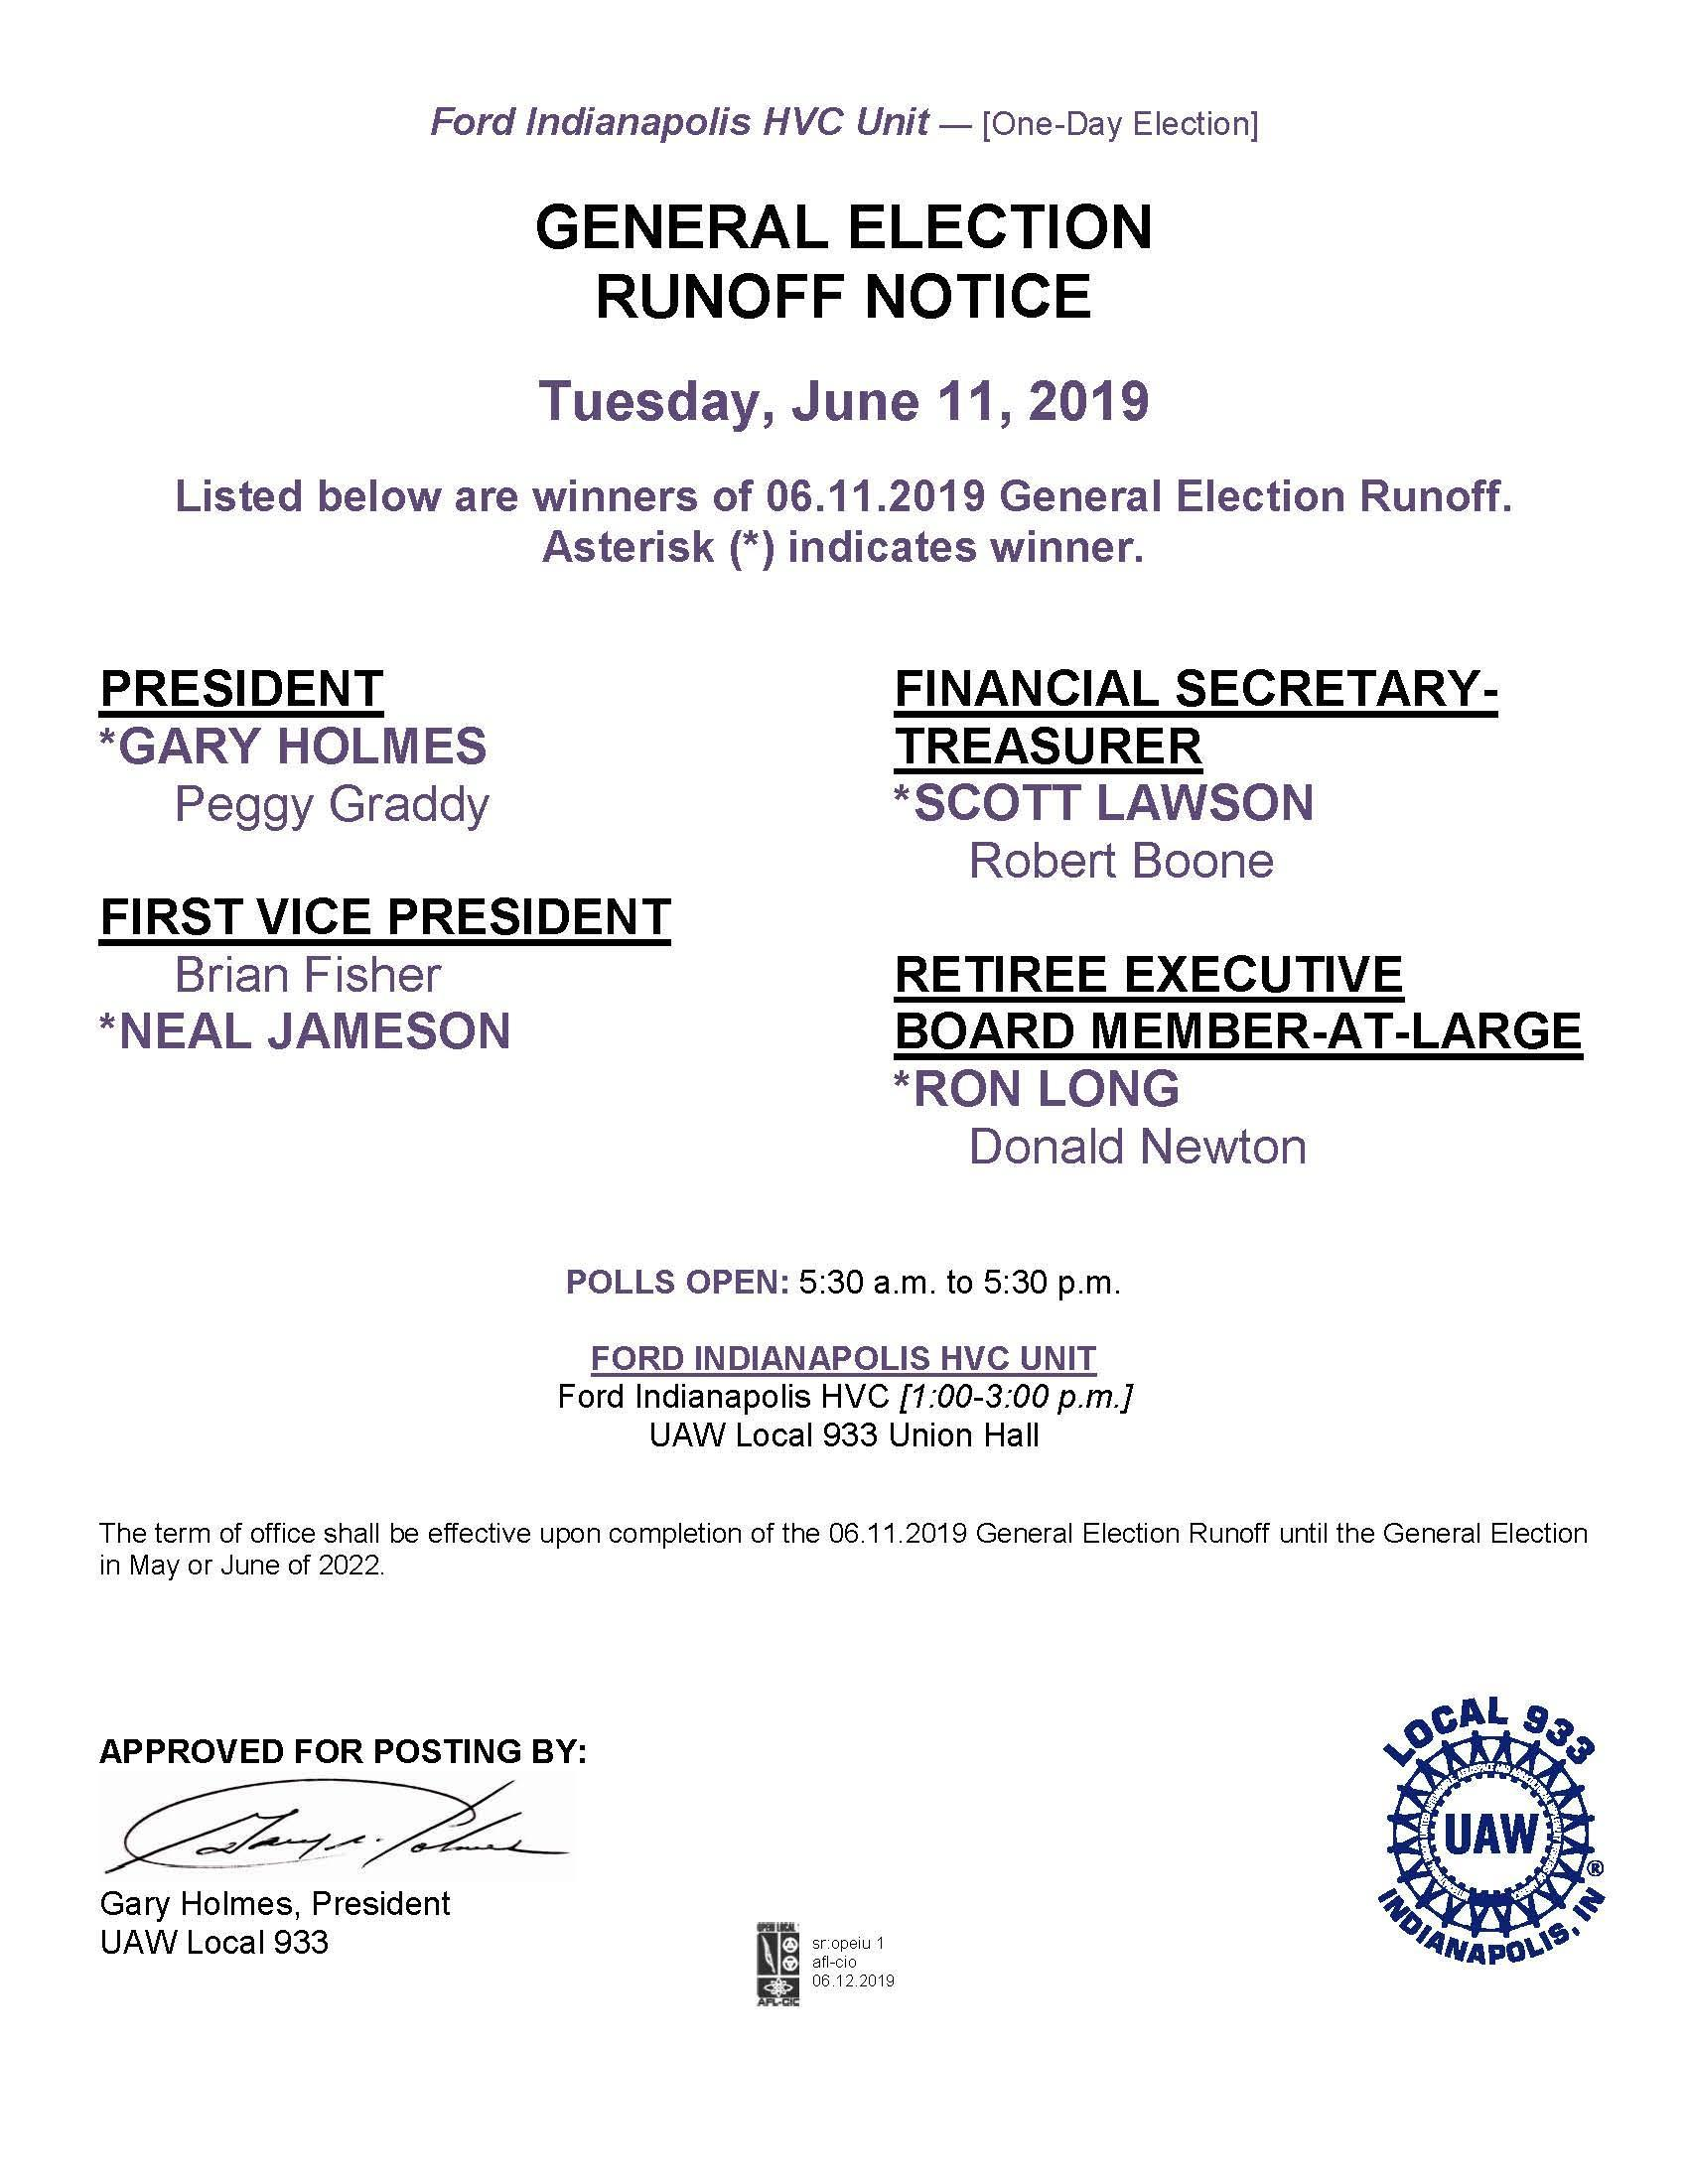 General Election Runoff Results 06/11/2019 | UAW Local 933